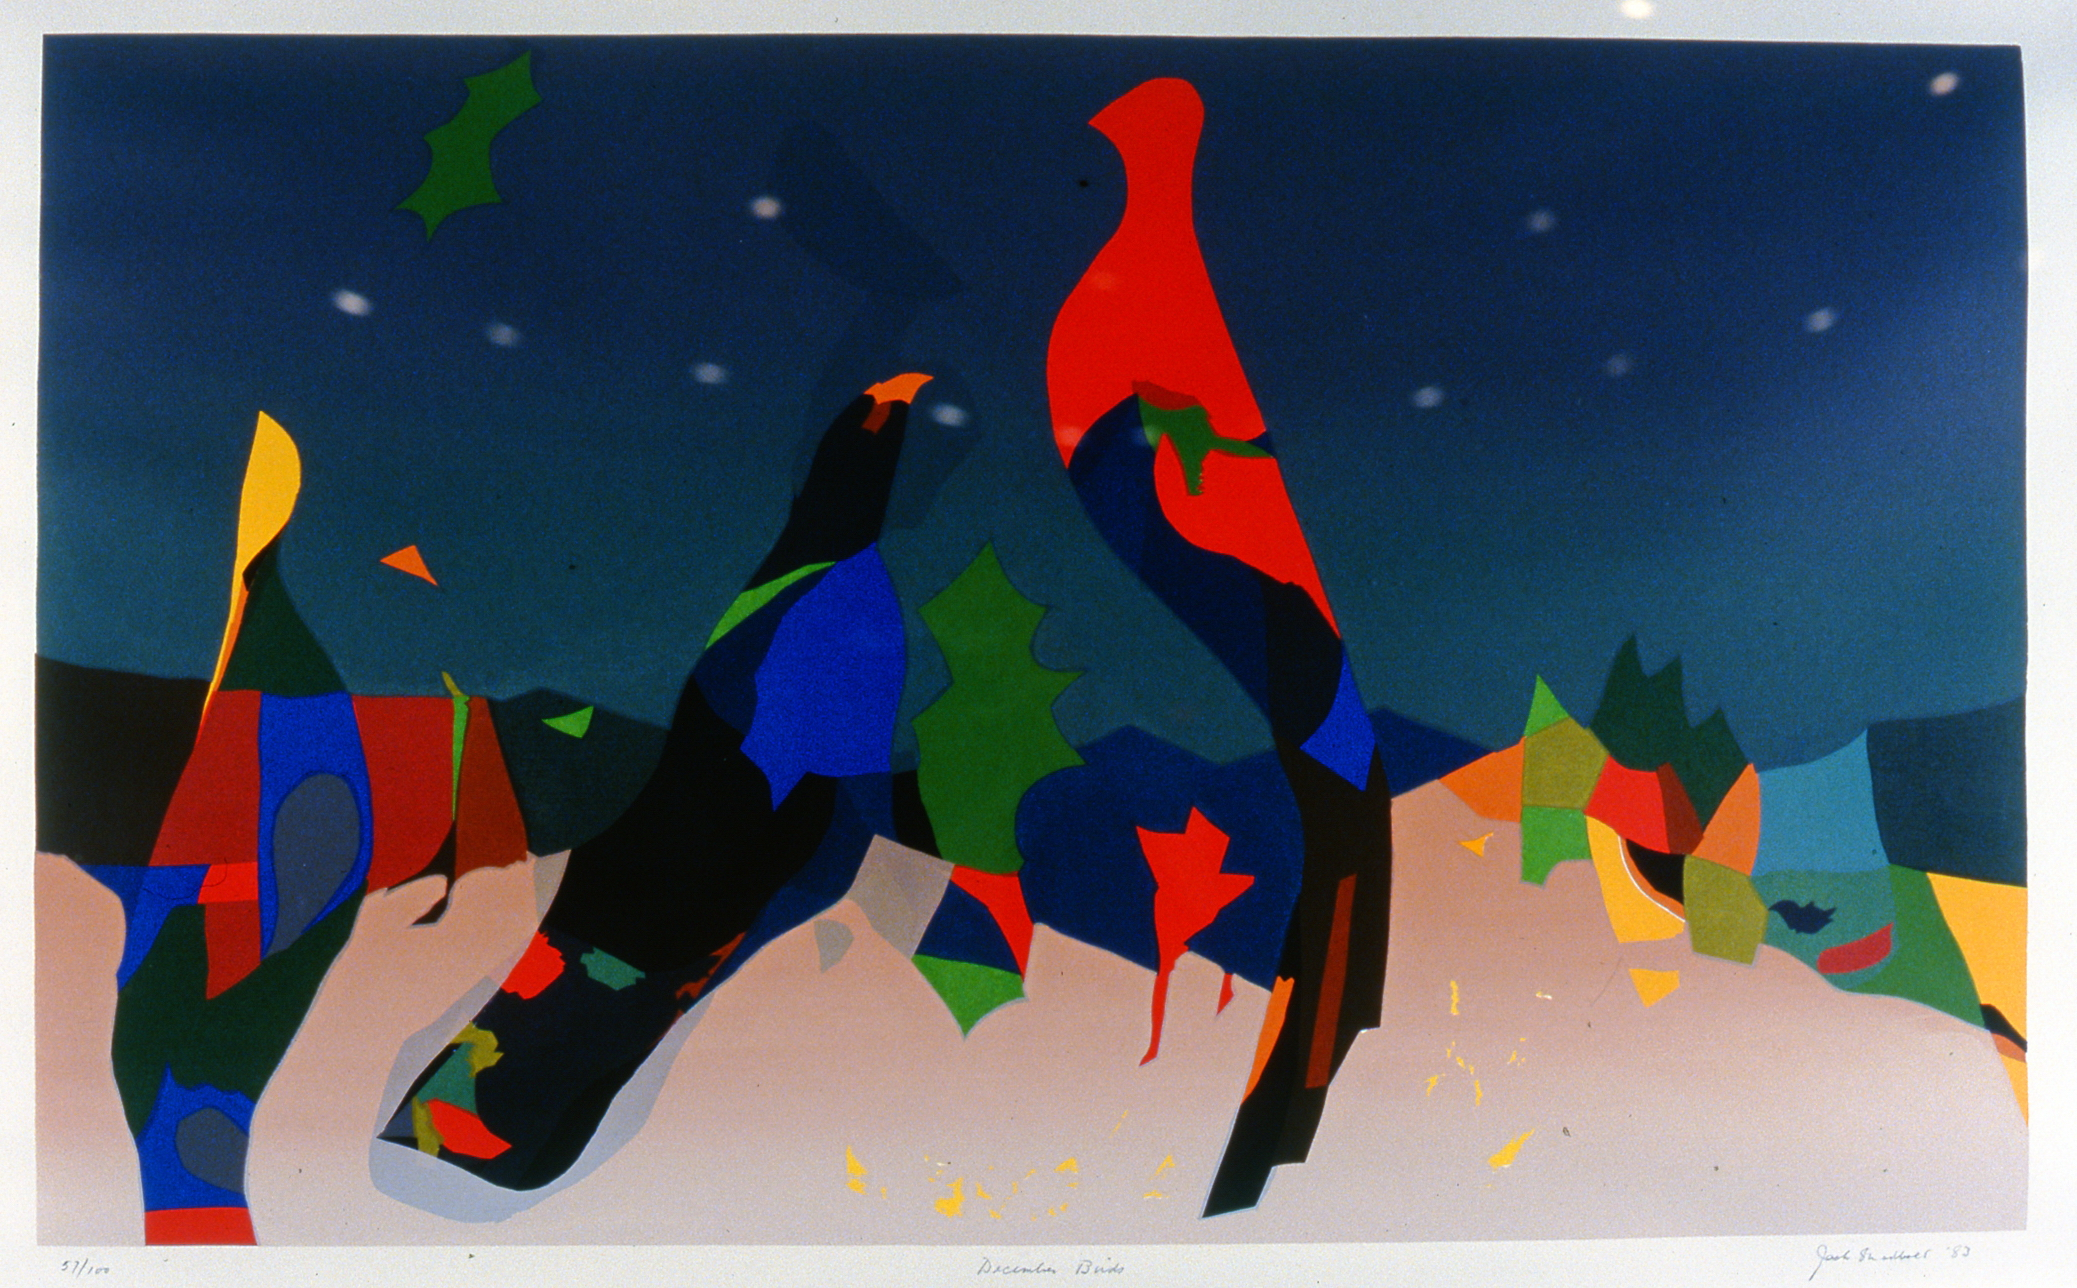 "December Birds,  1983, Jack Shadbolt, serigraph, edition 57/100, 18"" x 29 3/4"",  2003.06.05, gift of Mrs. Rosita Tovell"